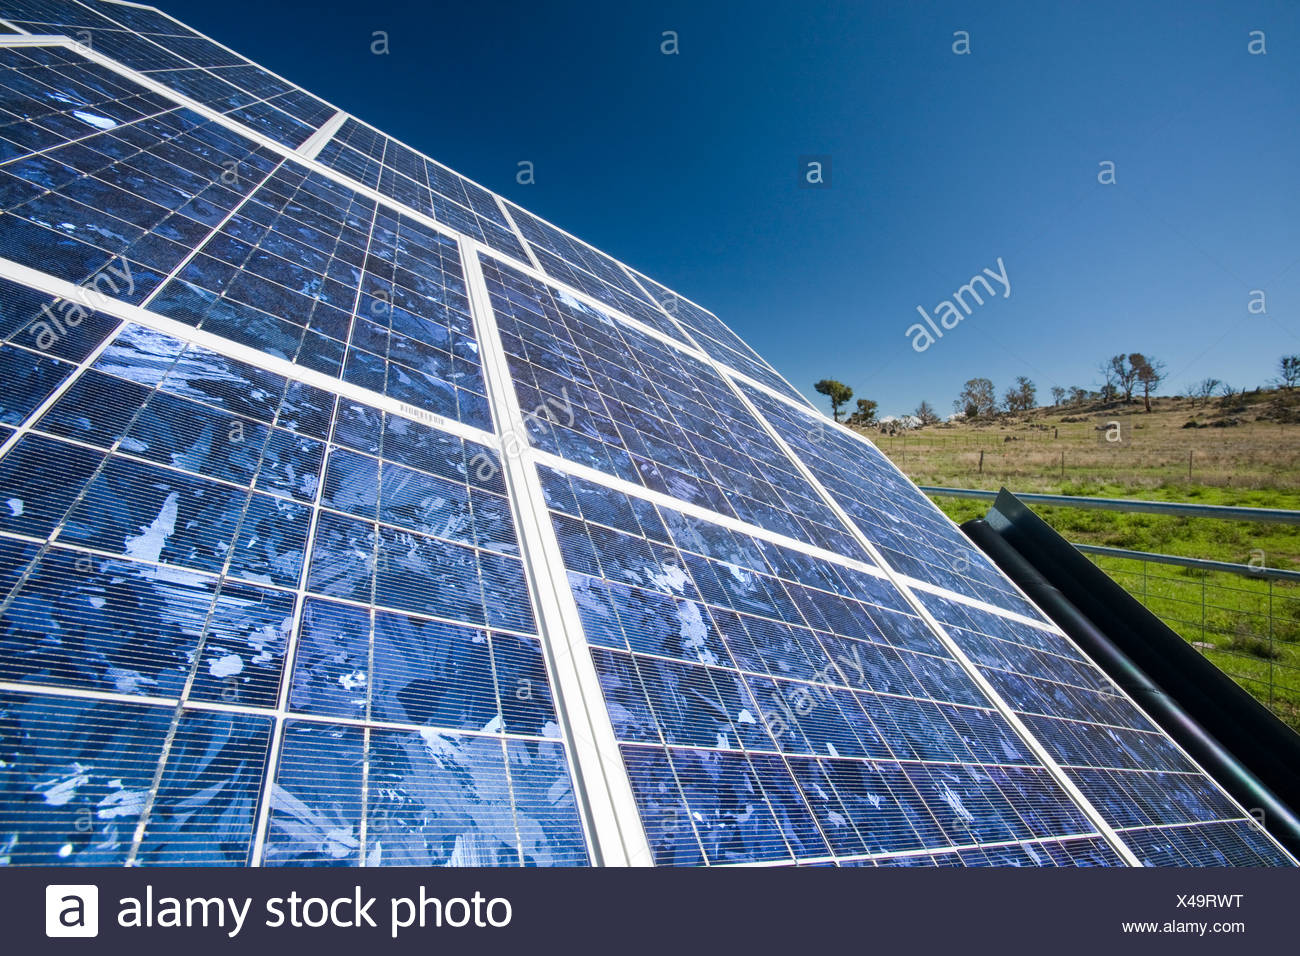 Solar voltaic panels in new South Wales, Australia. - Stock Image